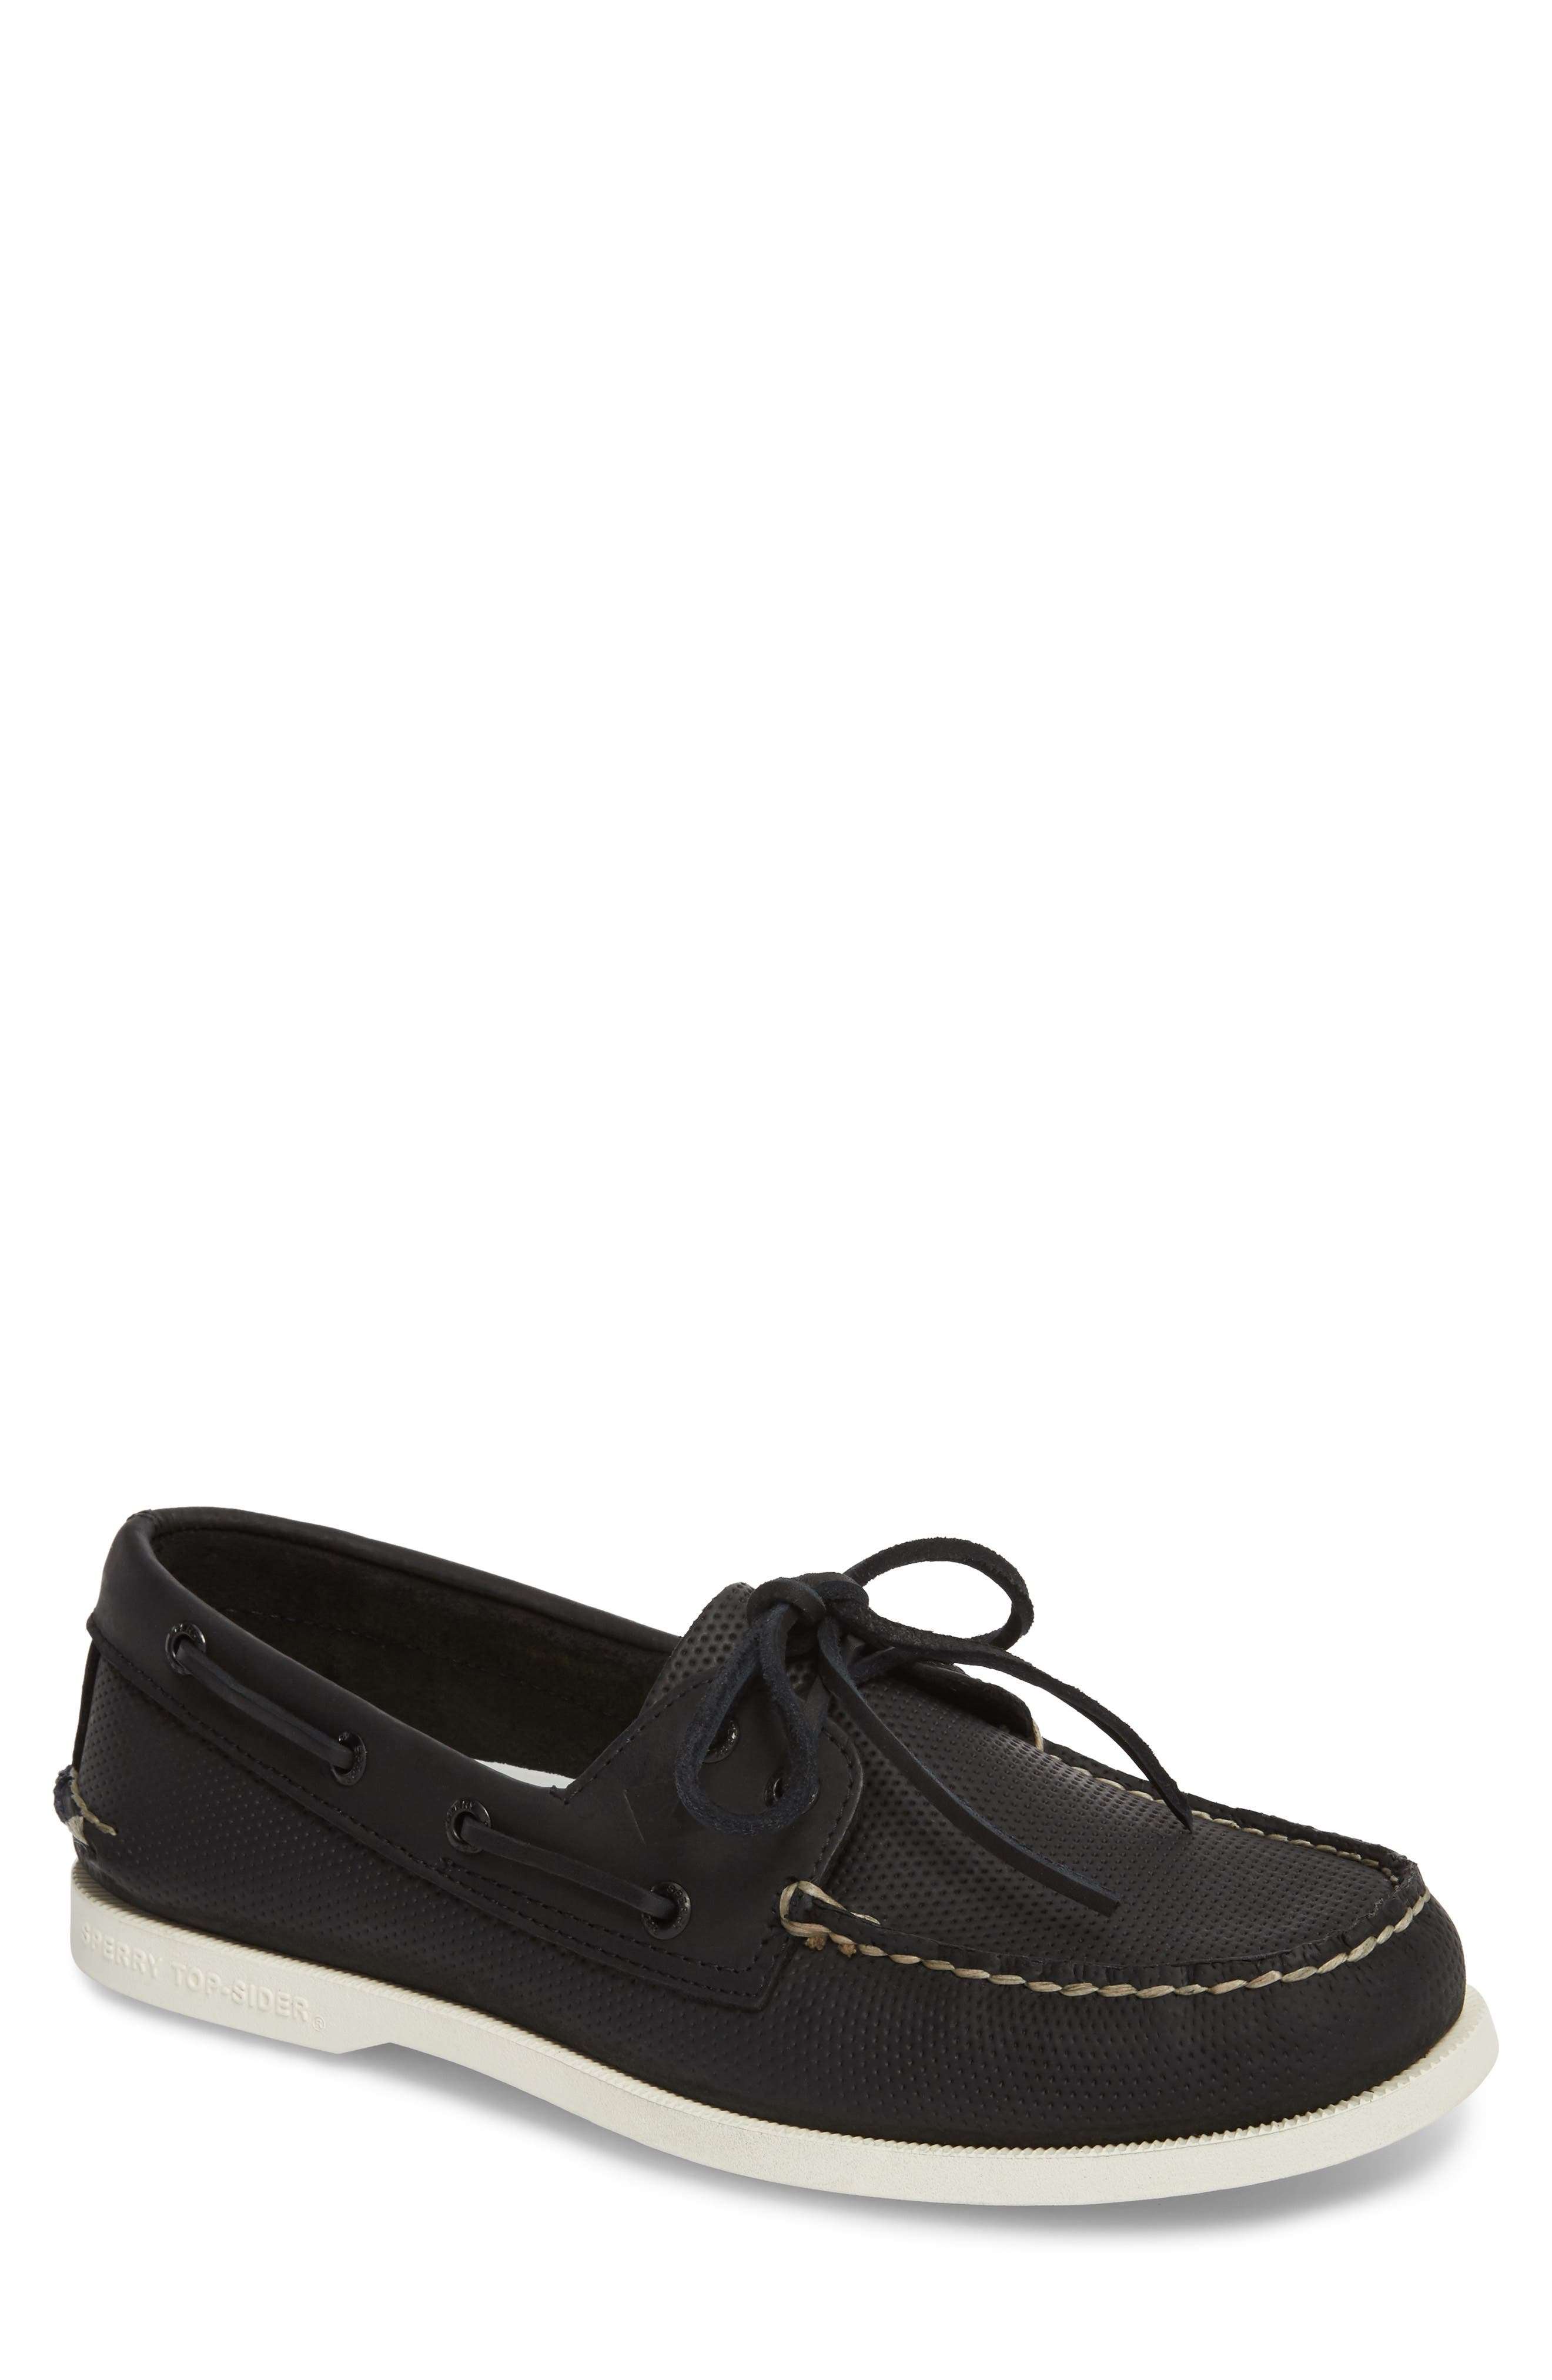 AO 2 Eye Perforated Boat Shoe,                         Main,                         color, 001